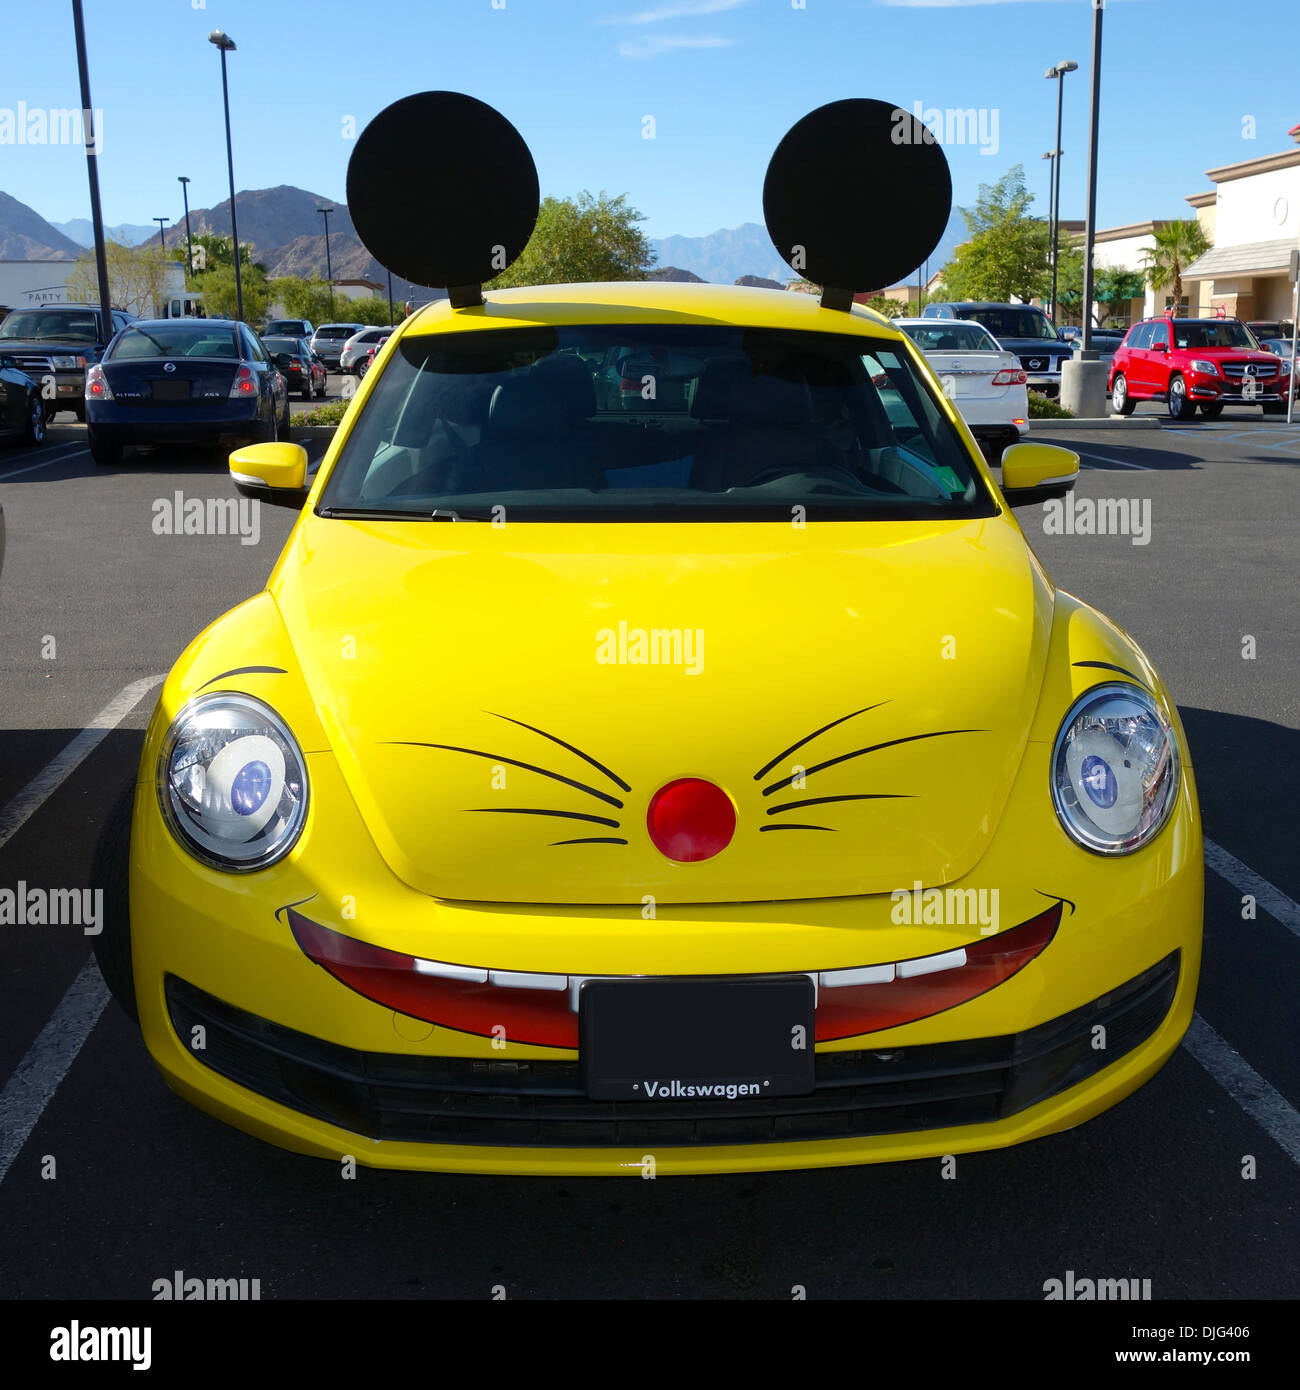 An extermination company based in La Quinta, California USA has their company car decorated like a mouse. - Stock Image